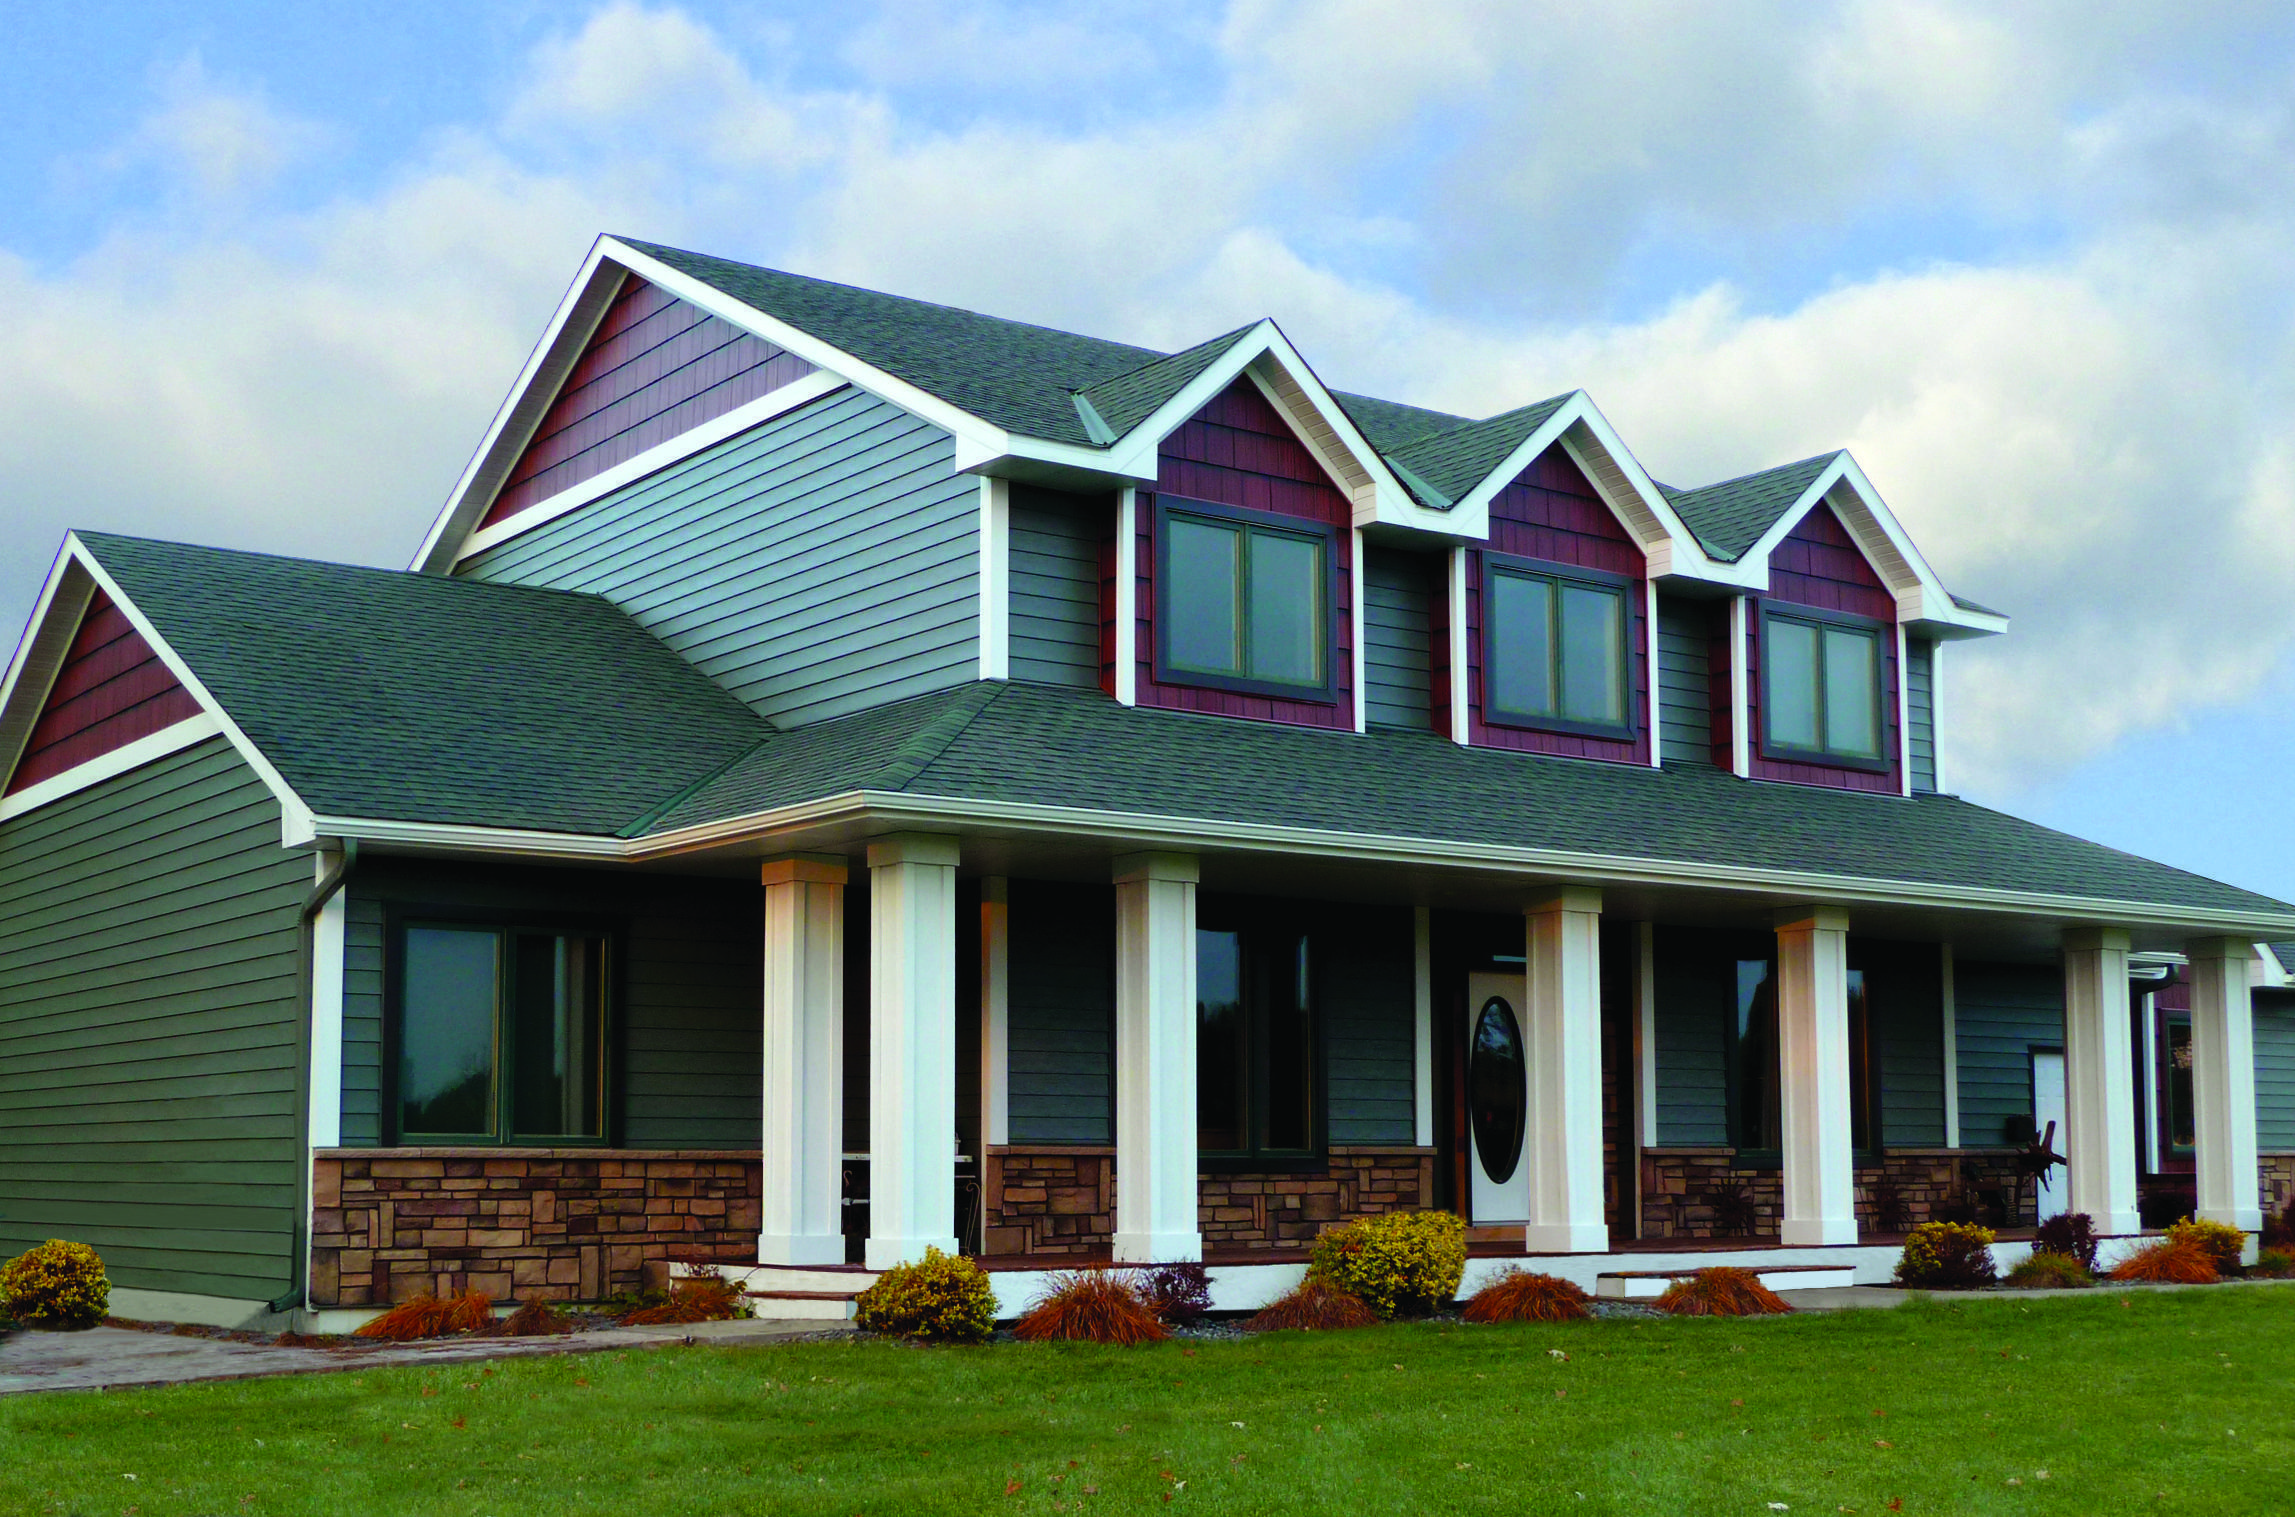 This charming 2-story home combines the timeless beauty of traditional lap siding and the distinctive accents of Arrowline Shake Roofing in Classic Red HD which gives it a natural, elegant style